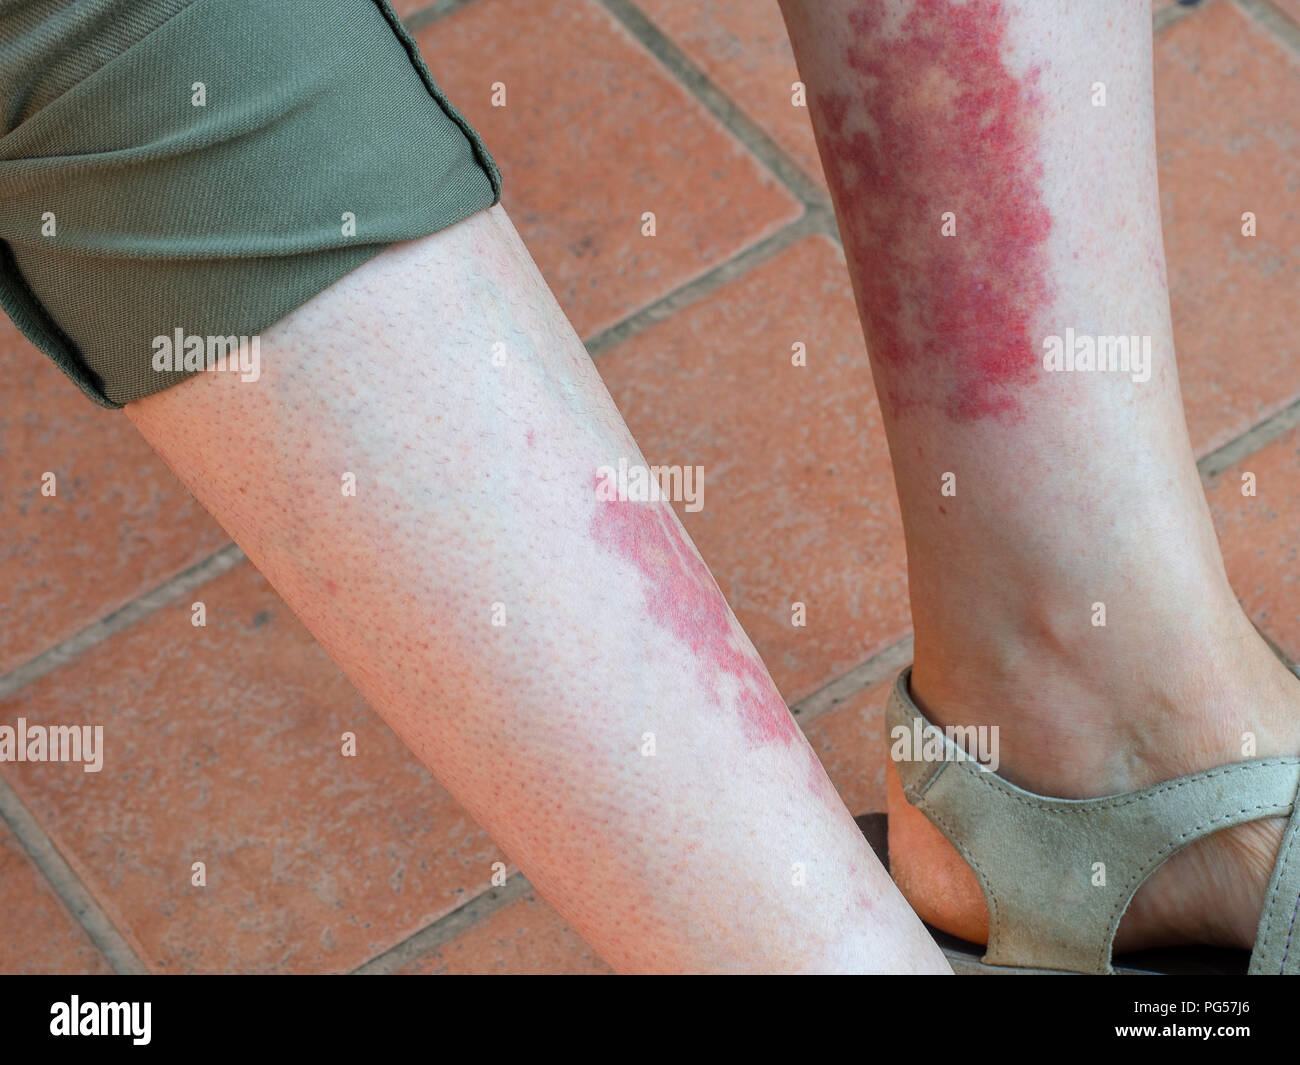 Leukocytoclastic vasculitis, an inflammatory reaction in the blood vessels. Aka golfer's, hiker's or exercise-induced-vasculitis or Disney rash. - Stock Image